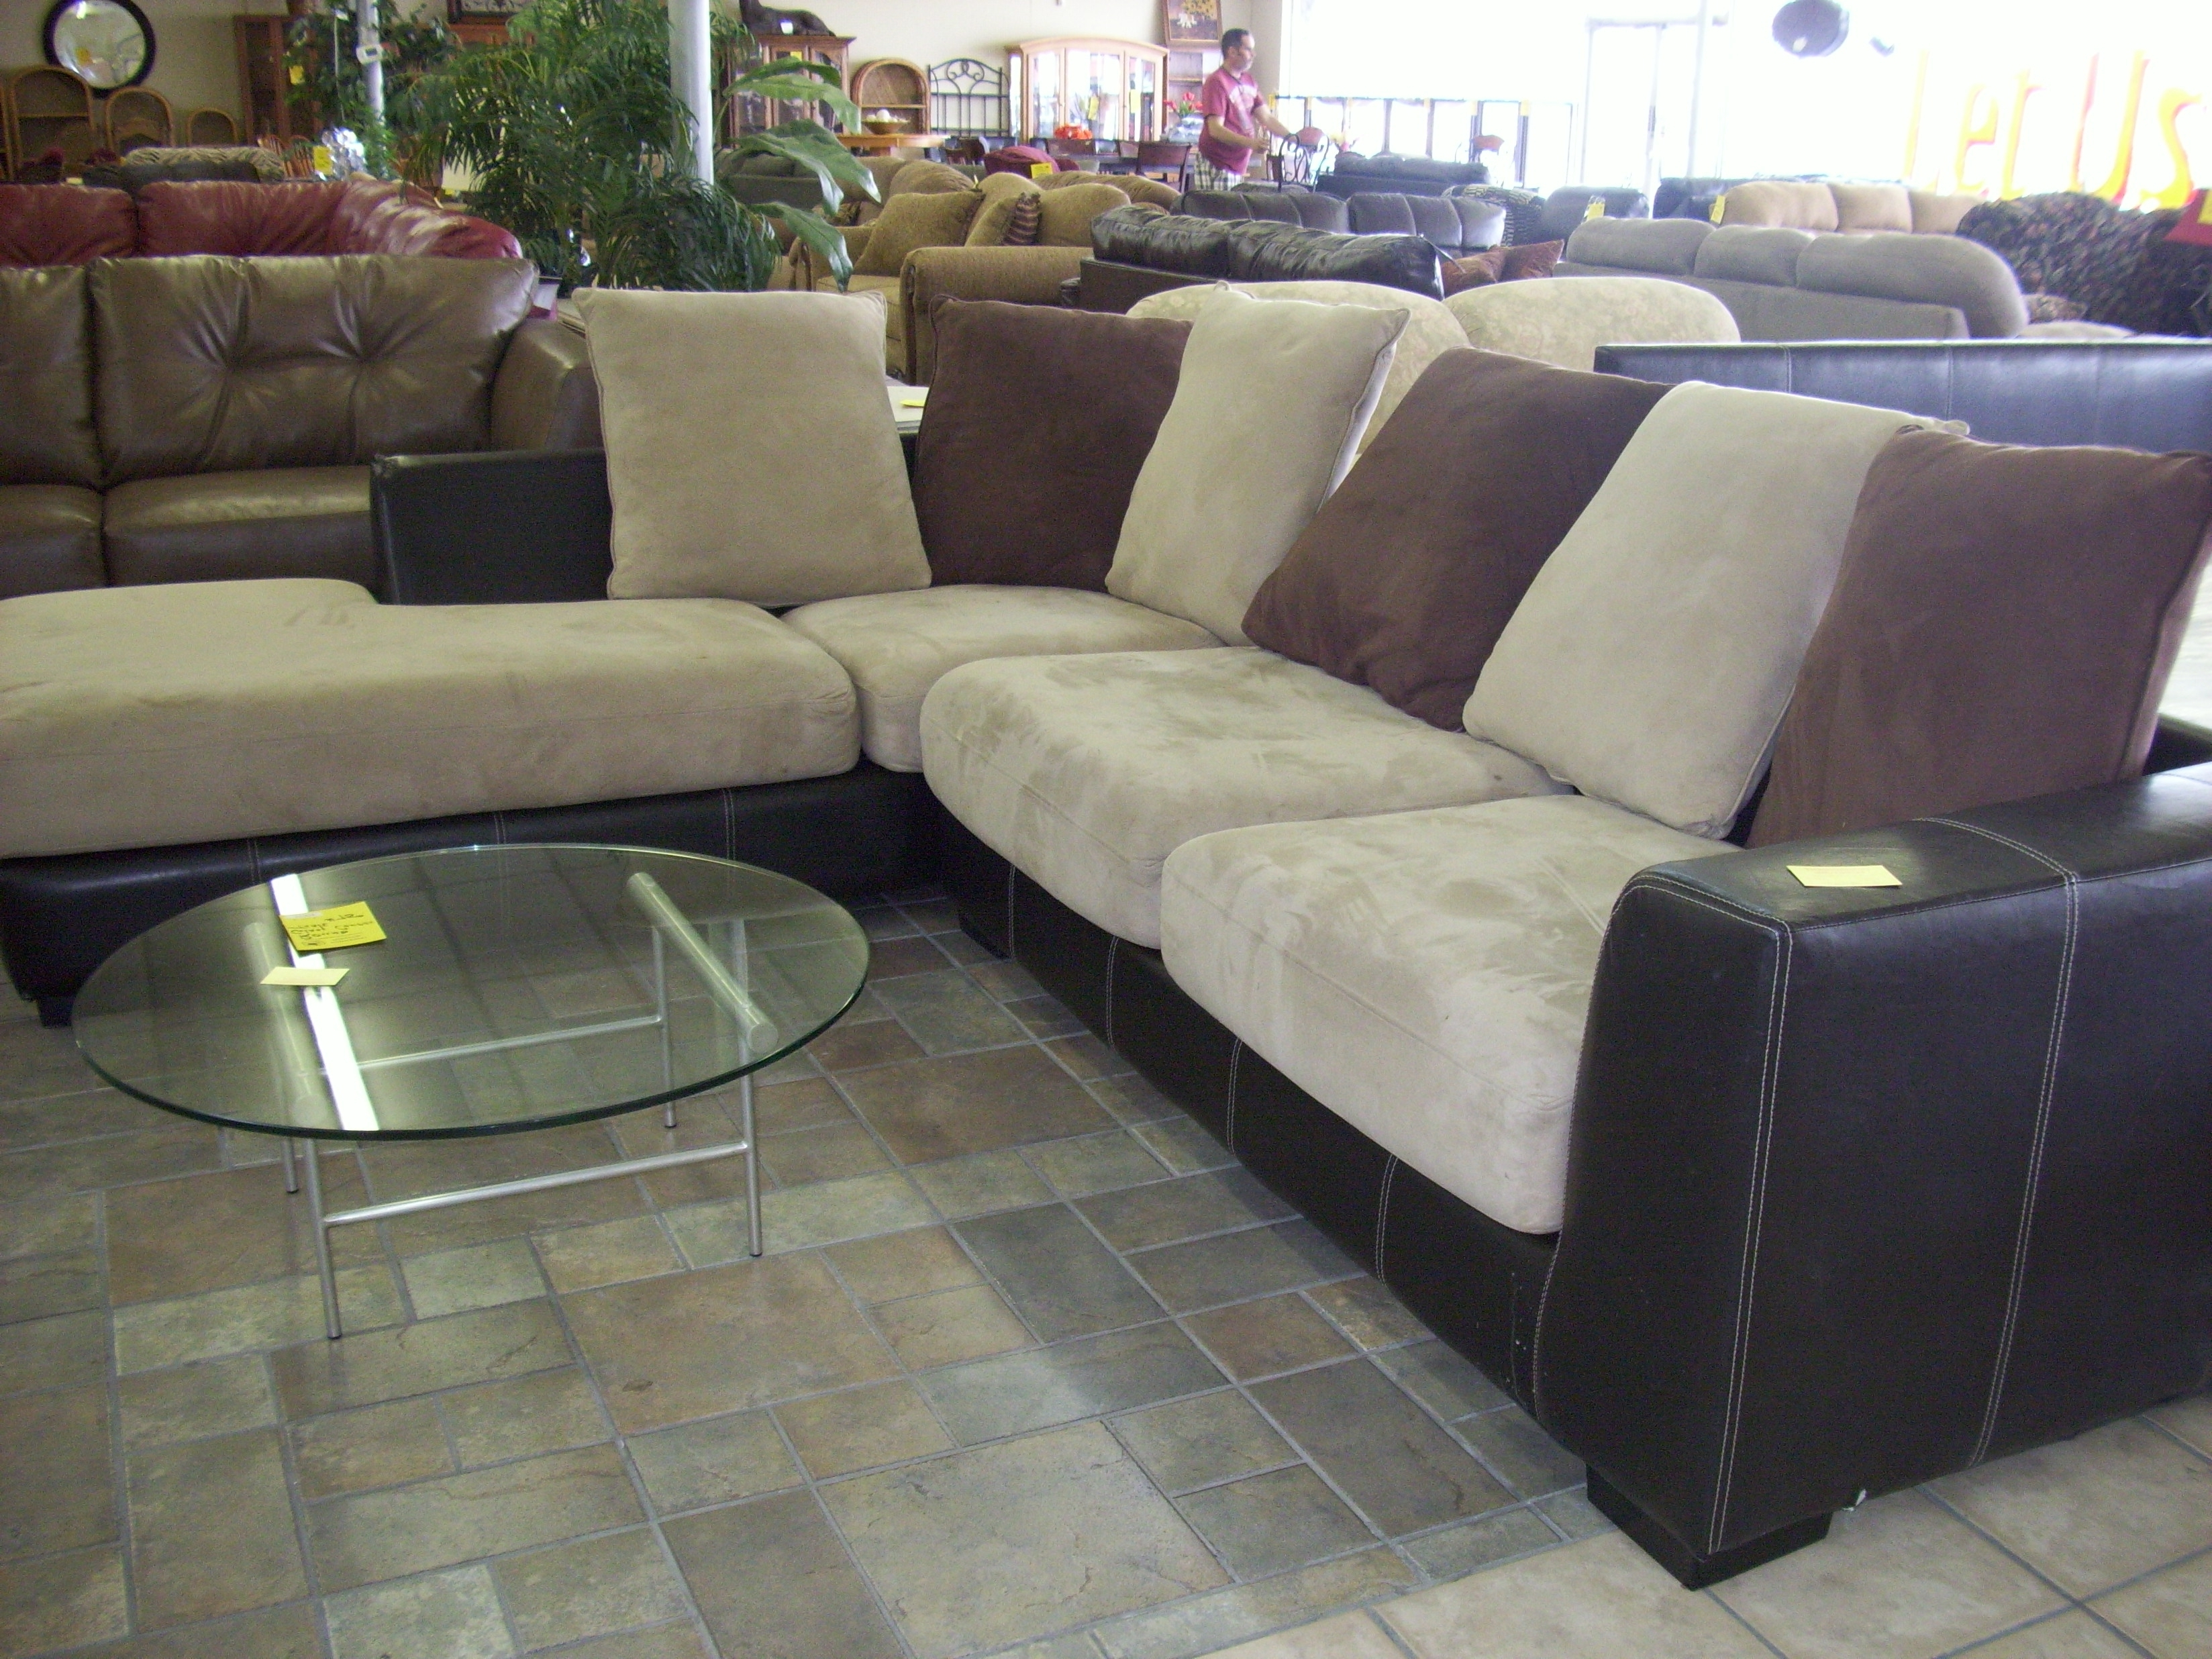 Latest Leather And Suede Sectional Couches • Leather Sofa Regarding Leather And Suede Sectional Sofas (View 3 of 15)